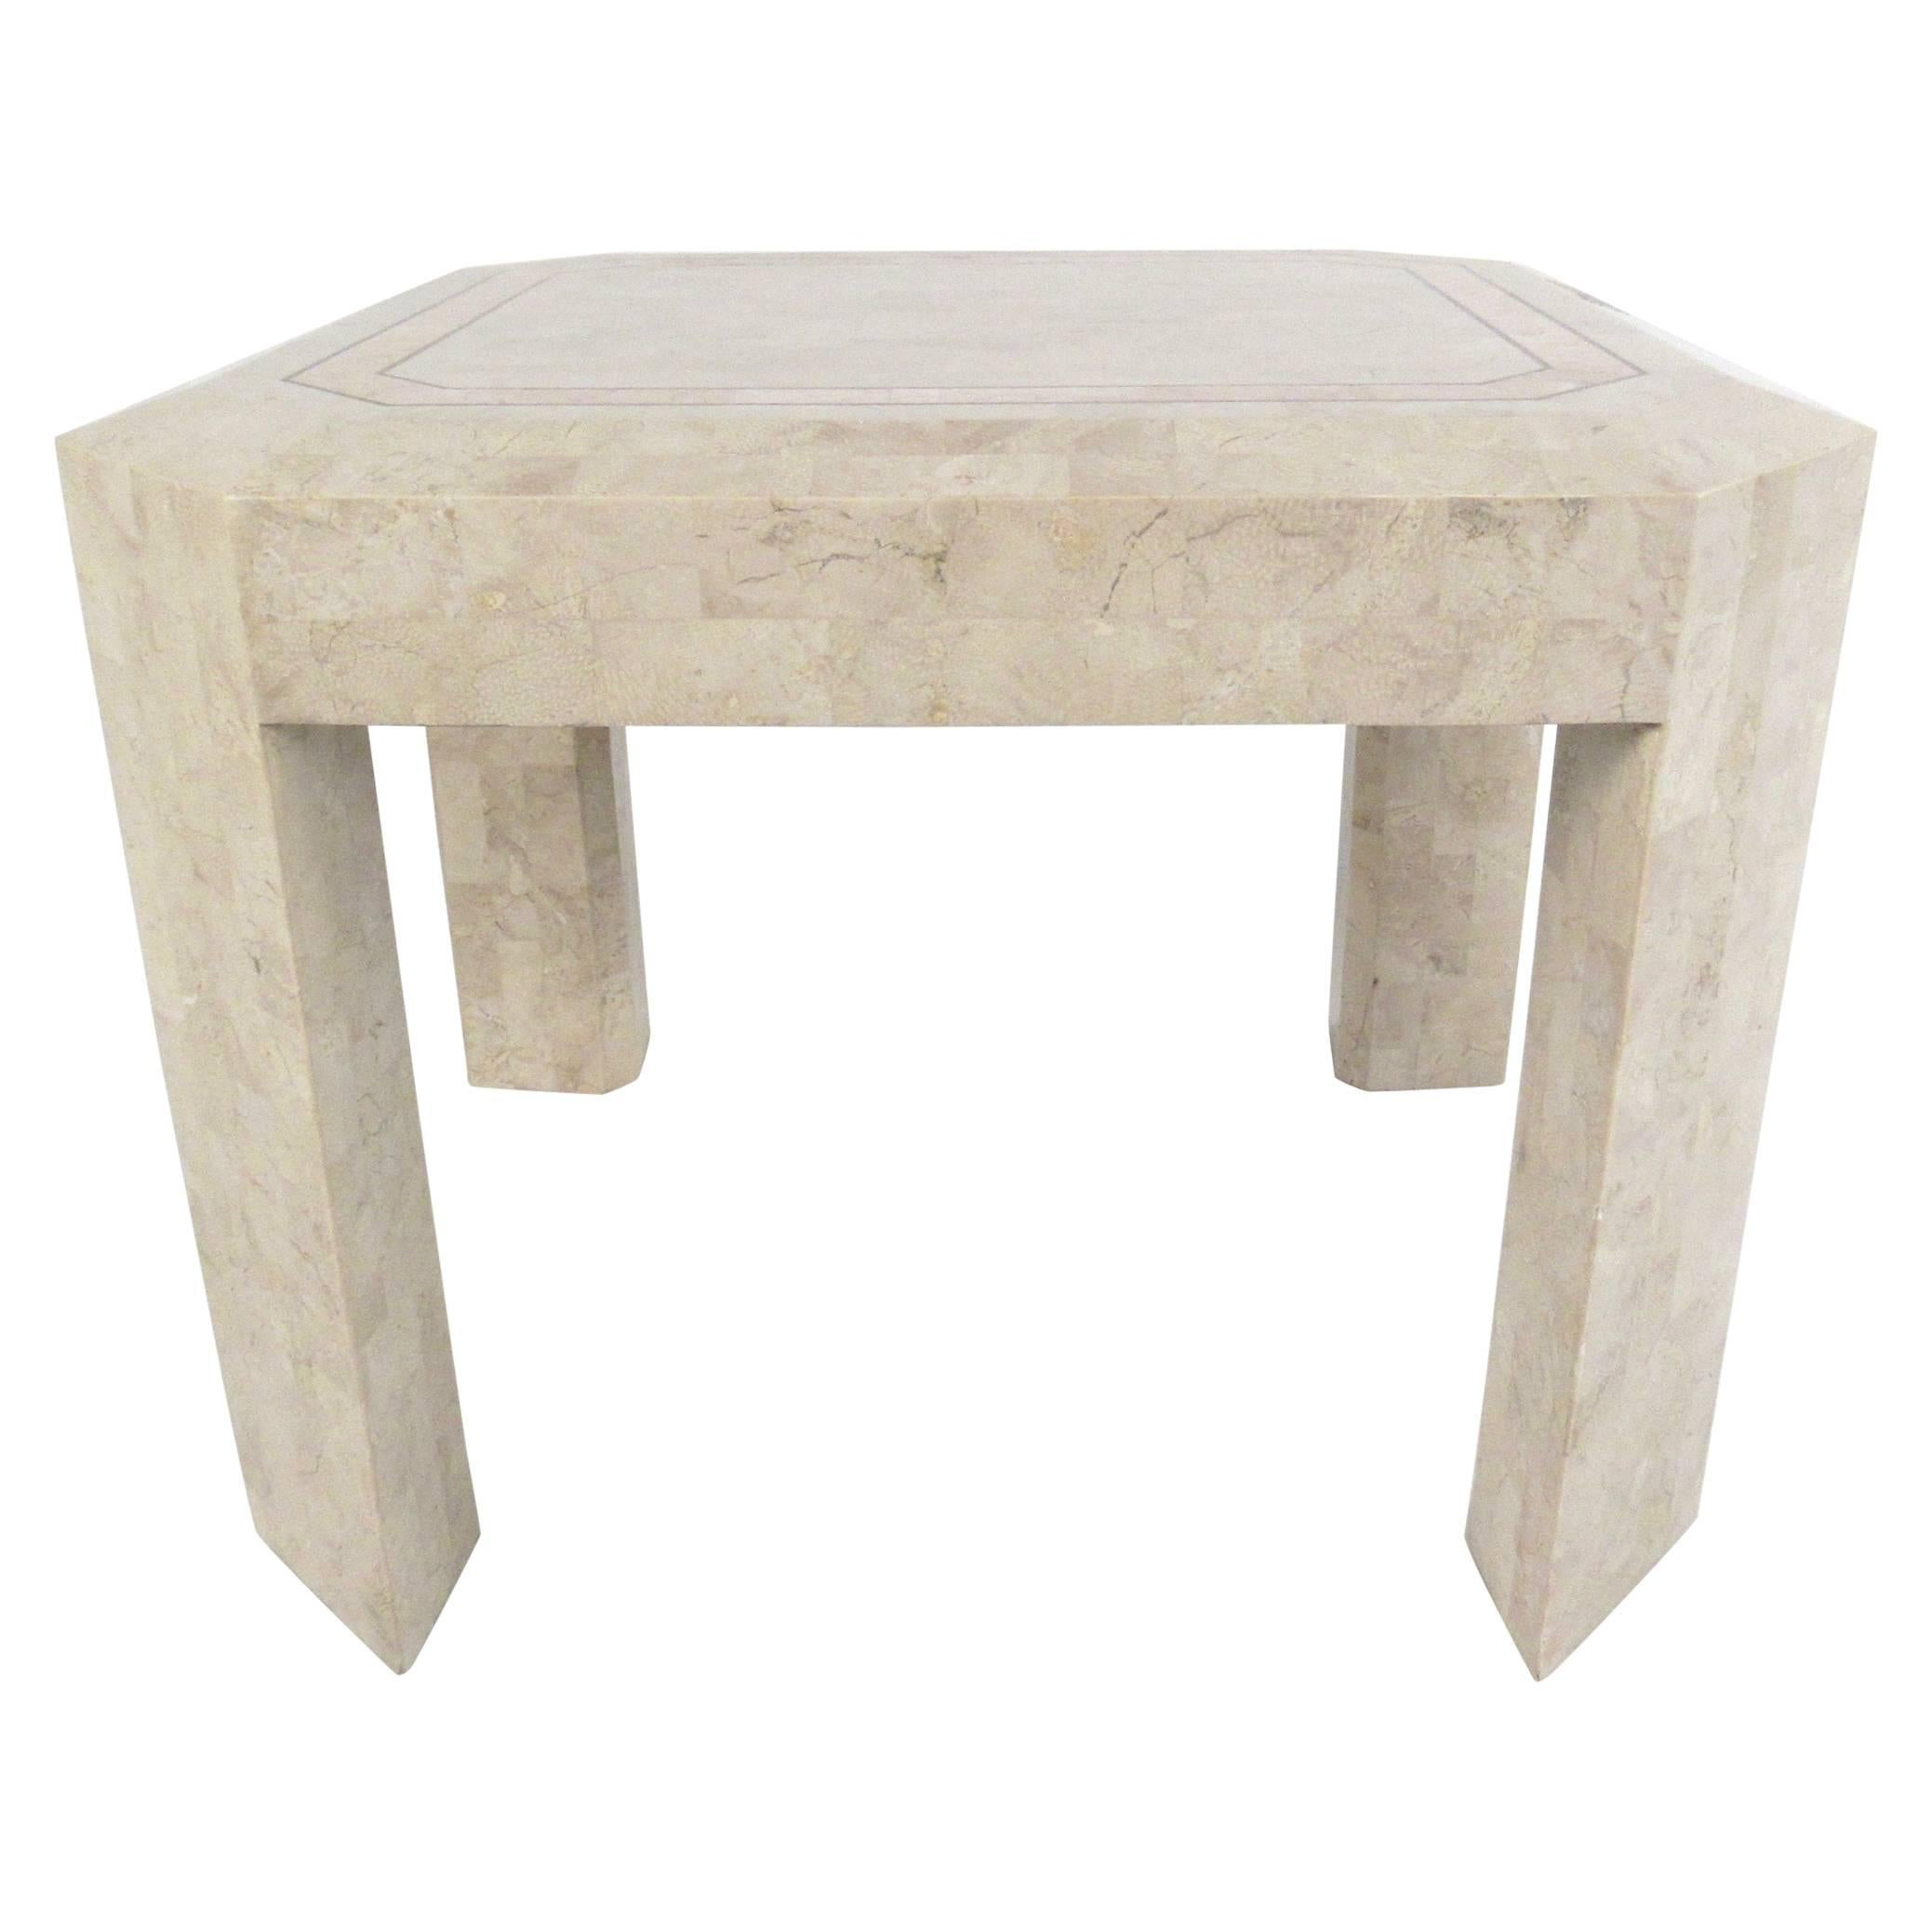 Tessellated Stone End Table after Maitland Smith